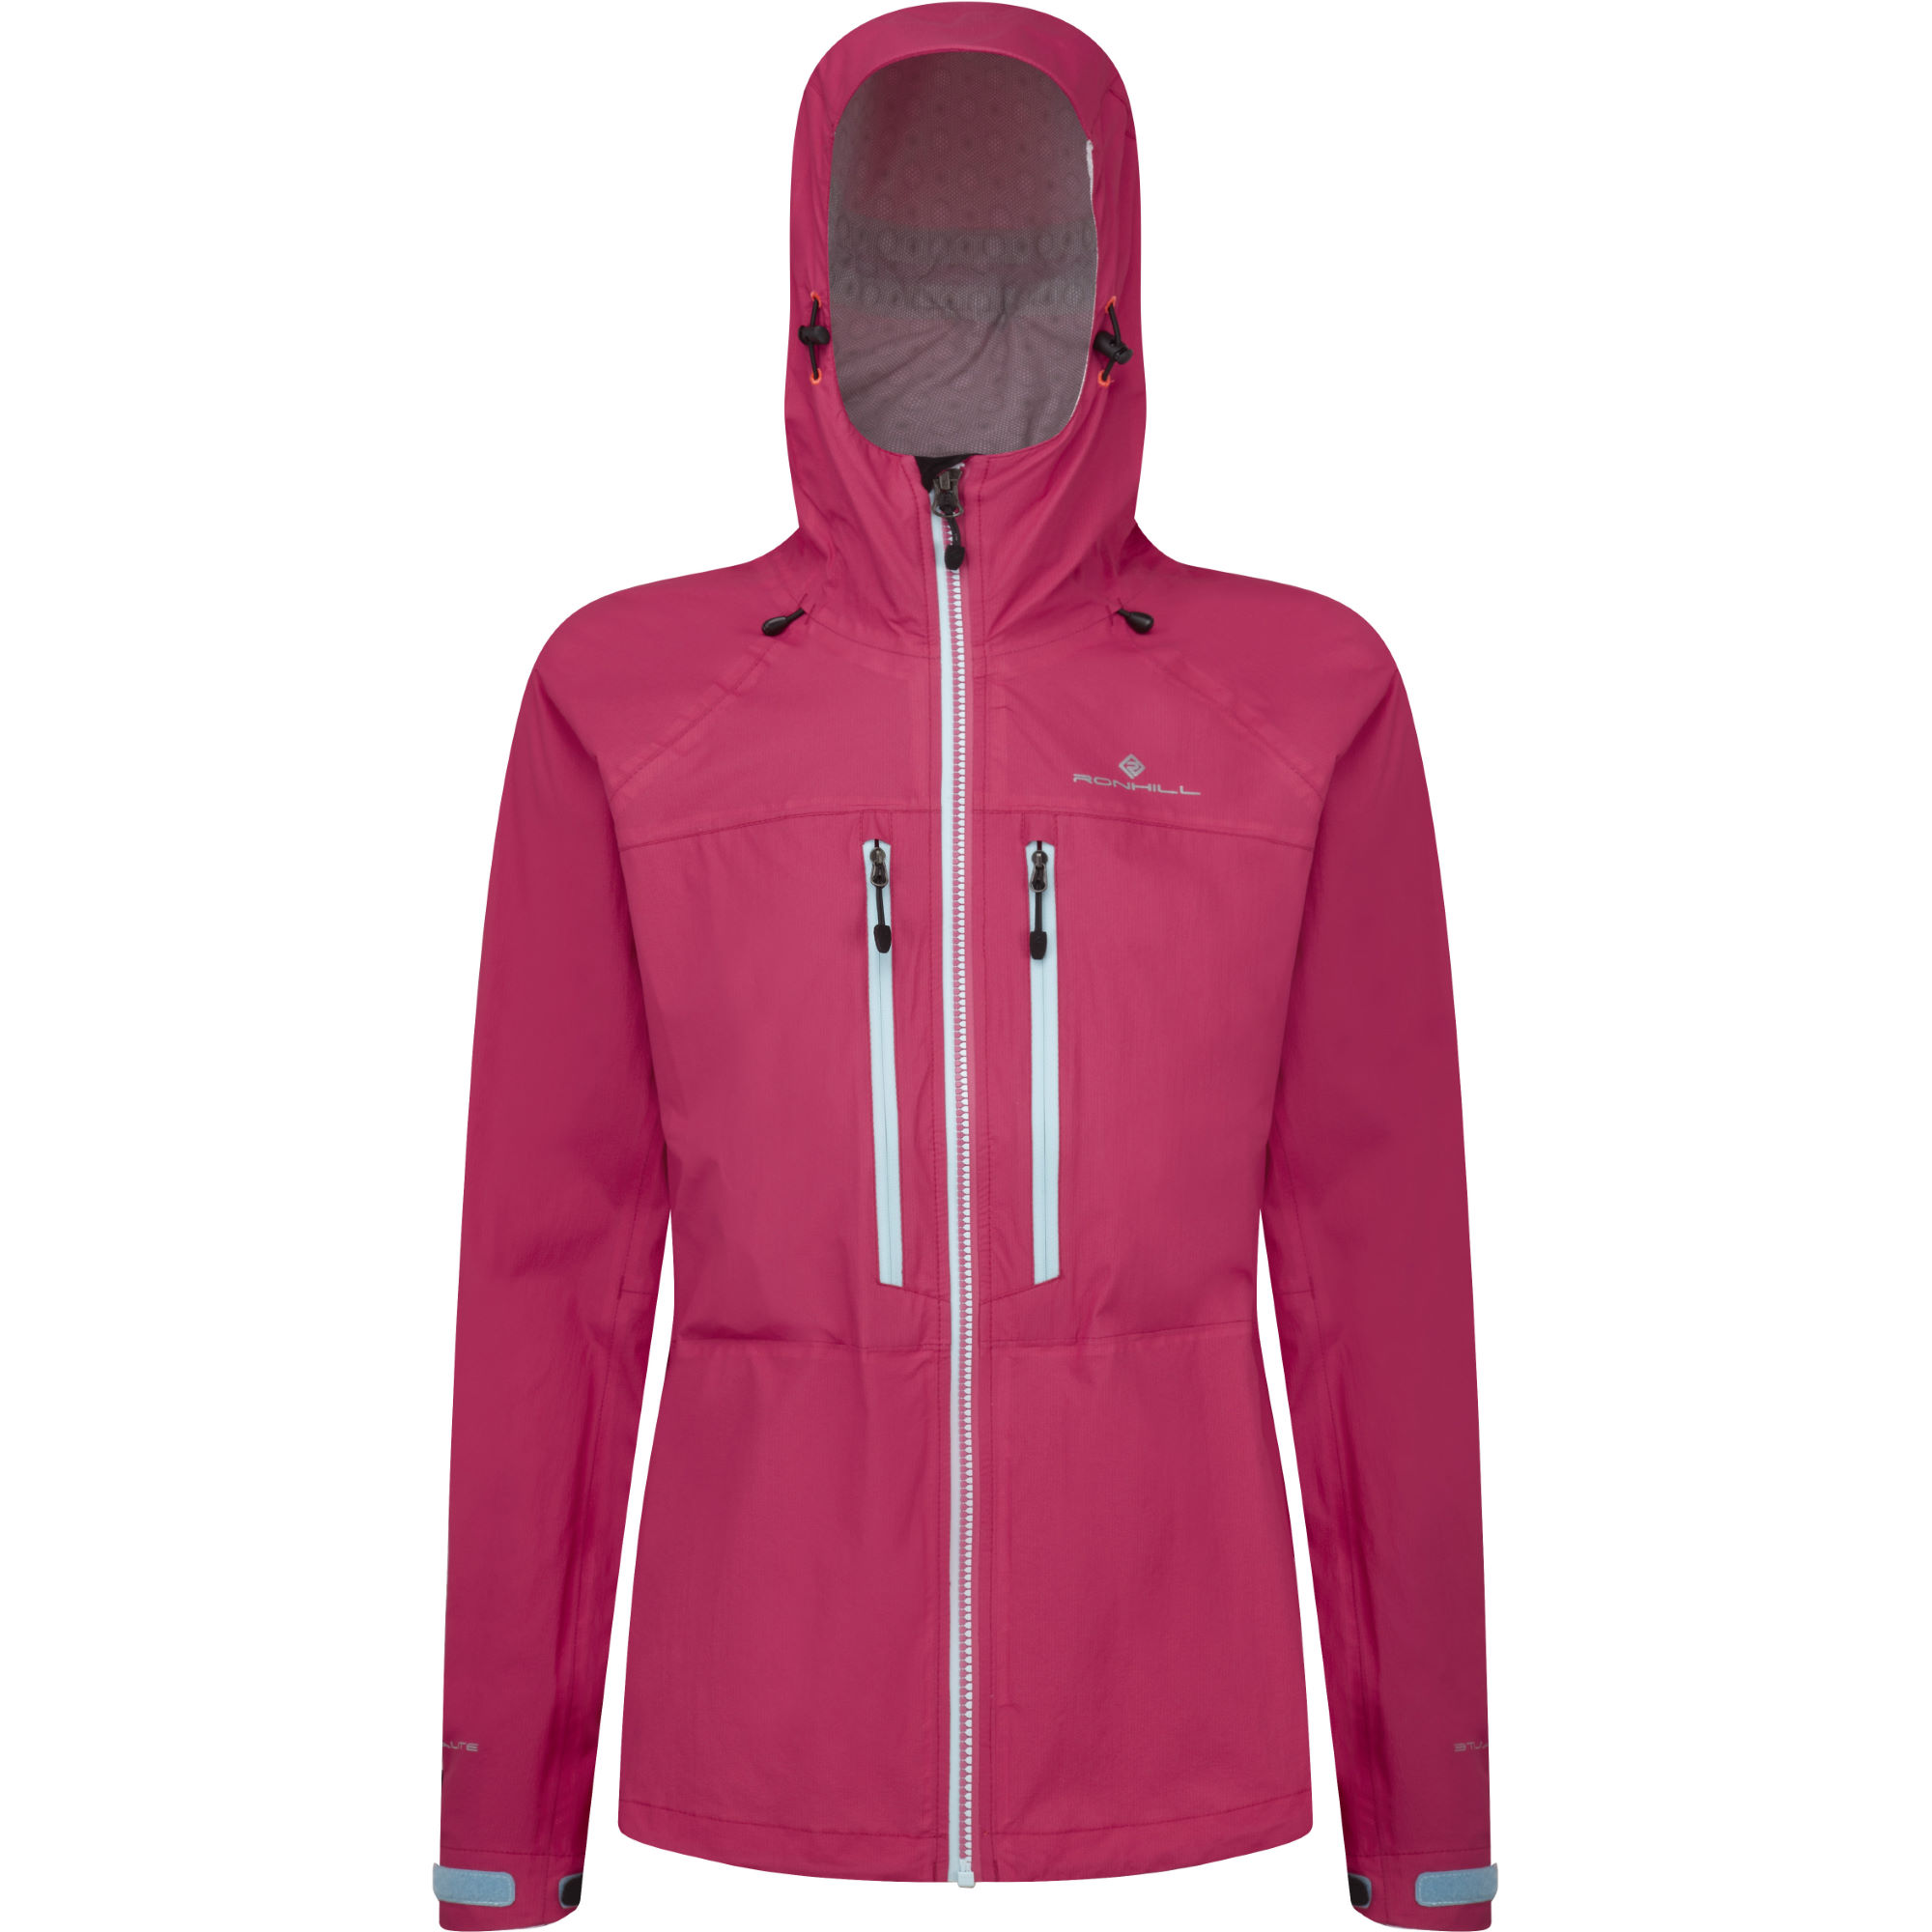 Wiggle | Ronhill Women&39s Trail Tempest Jacket - SS15 | Running